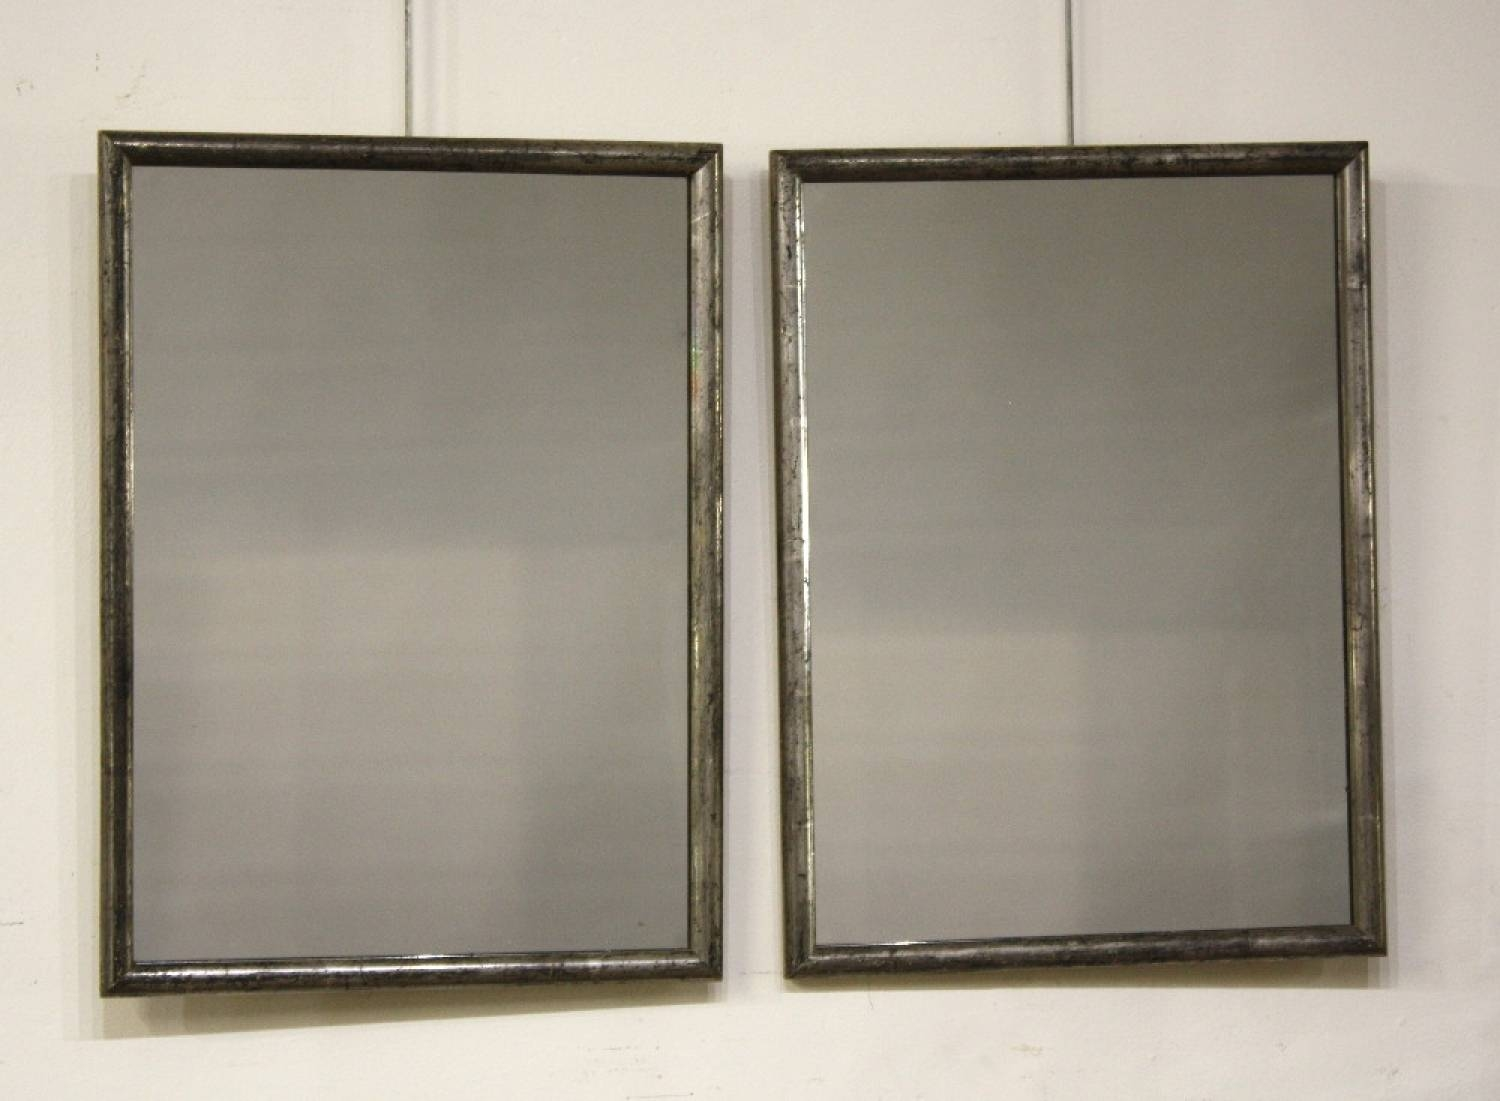 Pair Small Silver Framed Mirrors intended for Small Antique Mirrors (Image 19 of 25)